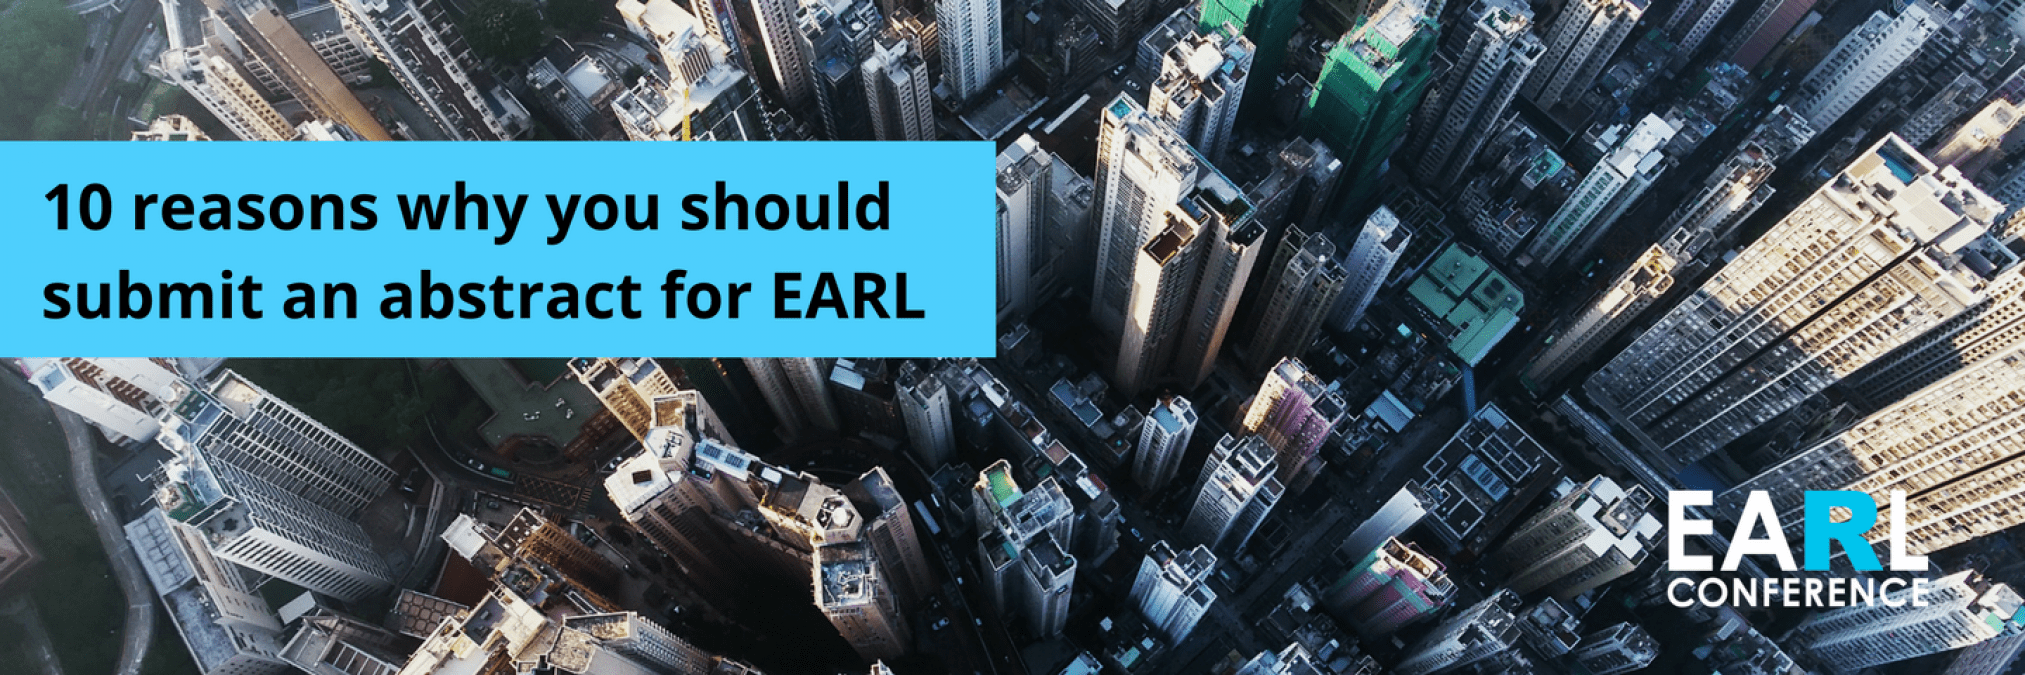 10 reasons why you should submit an abstract for EARL